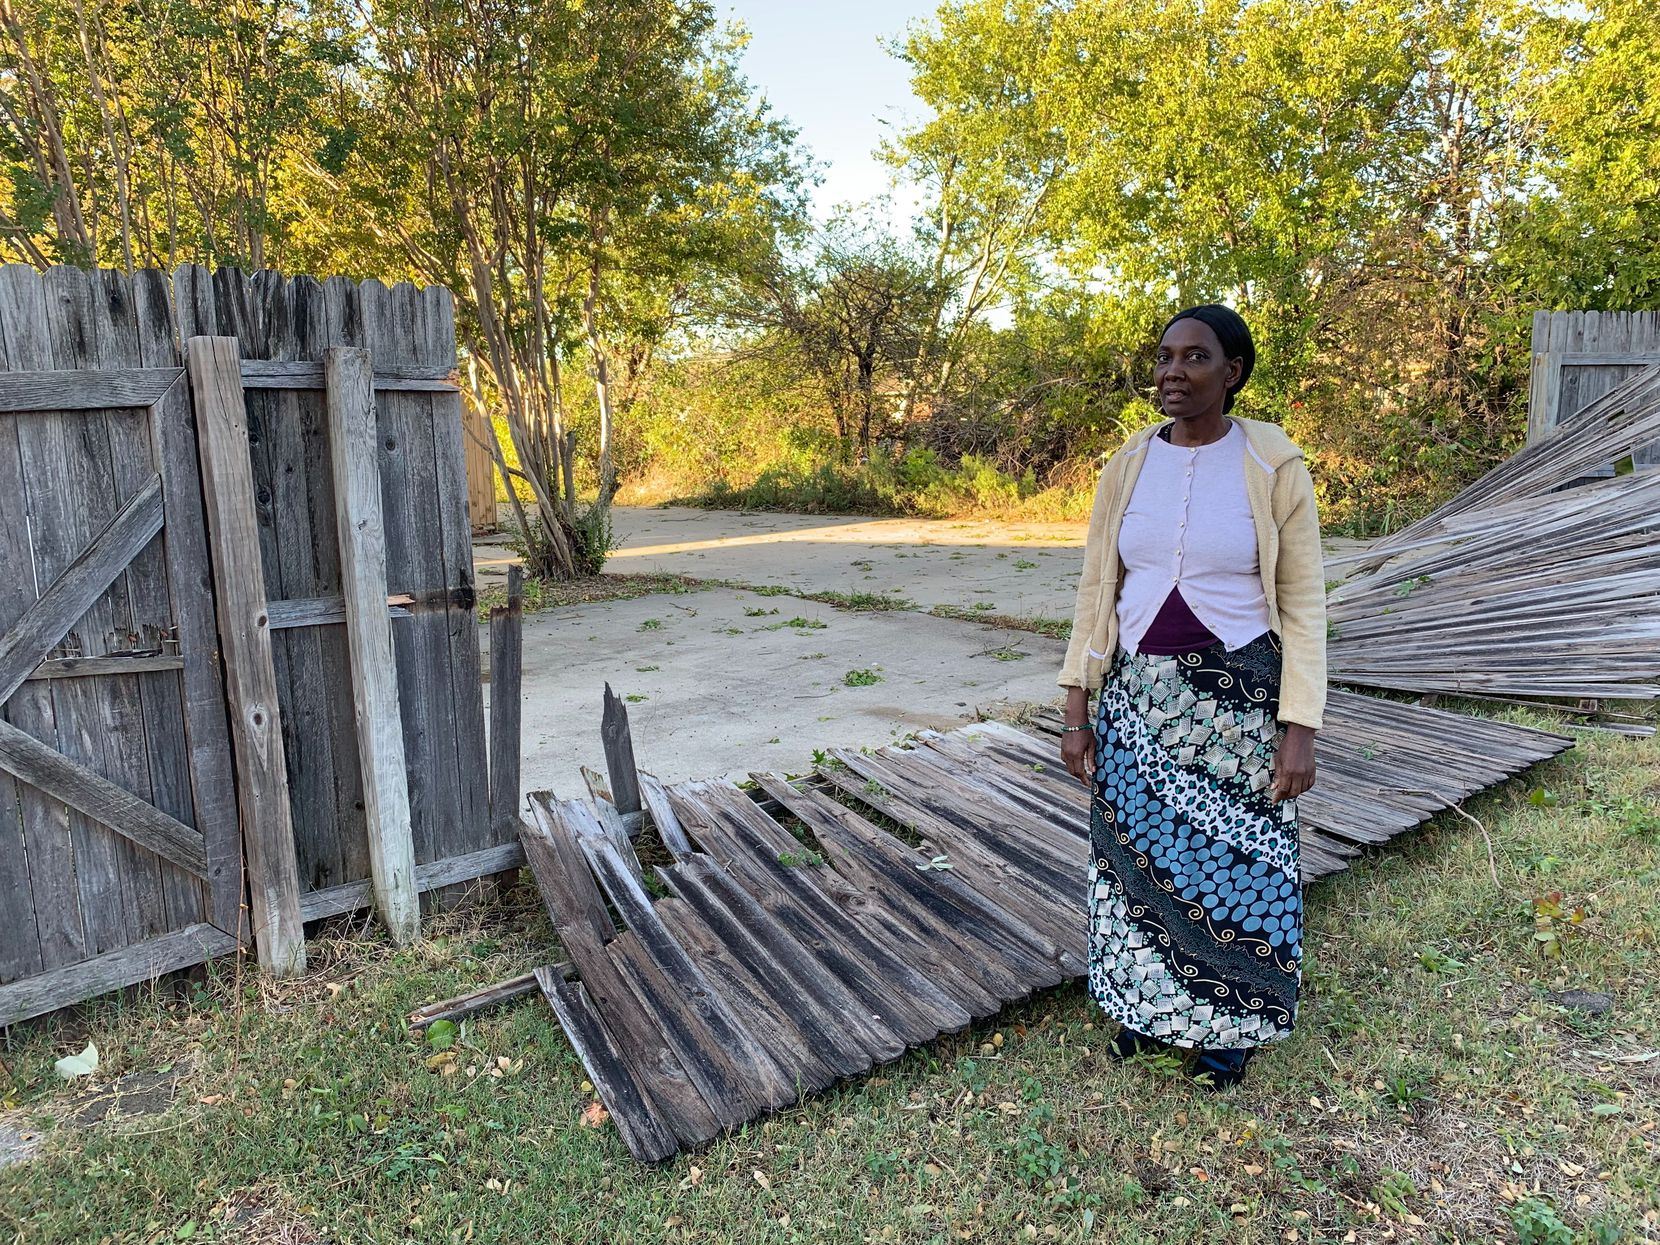 Mary Francis stands in front of a collapsed fence on October 21, 2019, in her backyard. She lives in Dallas just south of Buckingham Road, the street that divides Dallas and Richardson. She thanked God that she only suffered property damage in Sunday night's tornado. A tree collapsed in her front yard, a cover over her back patio shattered and fences on two sides of her backyard were damaged. The damage was worse in Richardson, just north of her home.